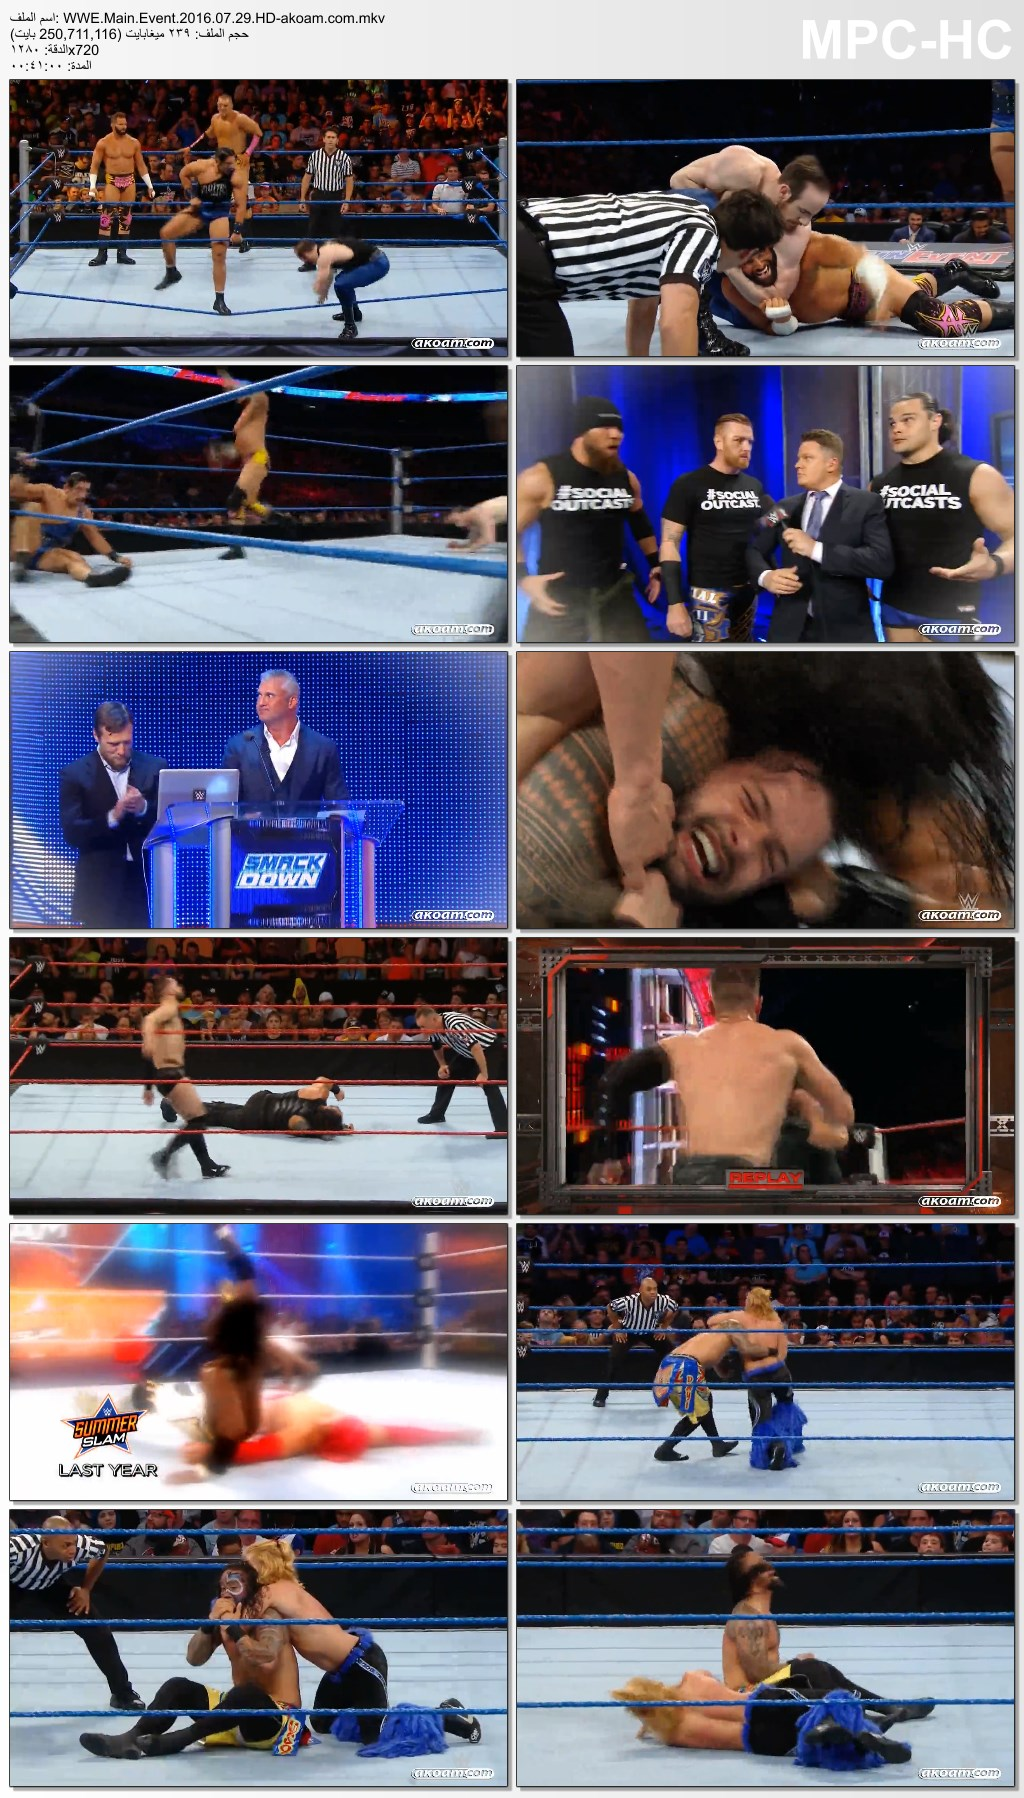 WWE Main Event,Main,Event,WWE